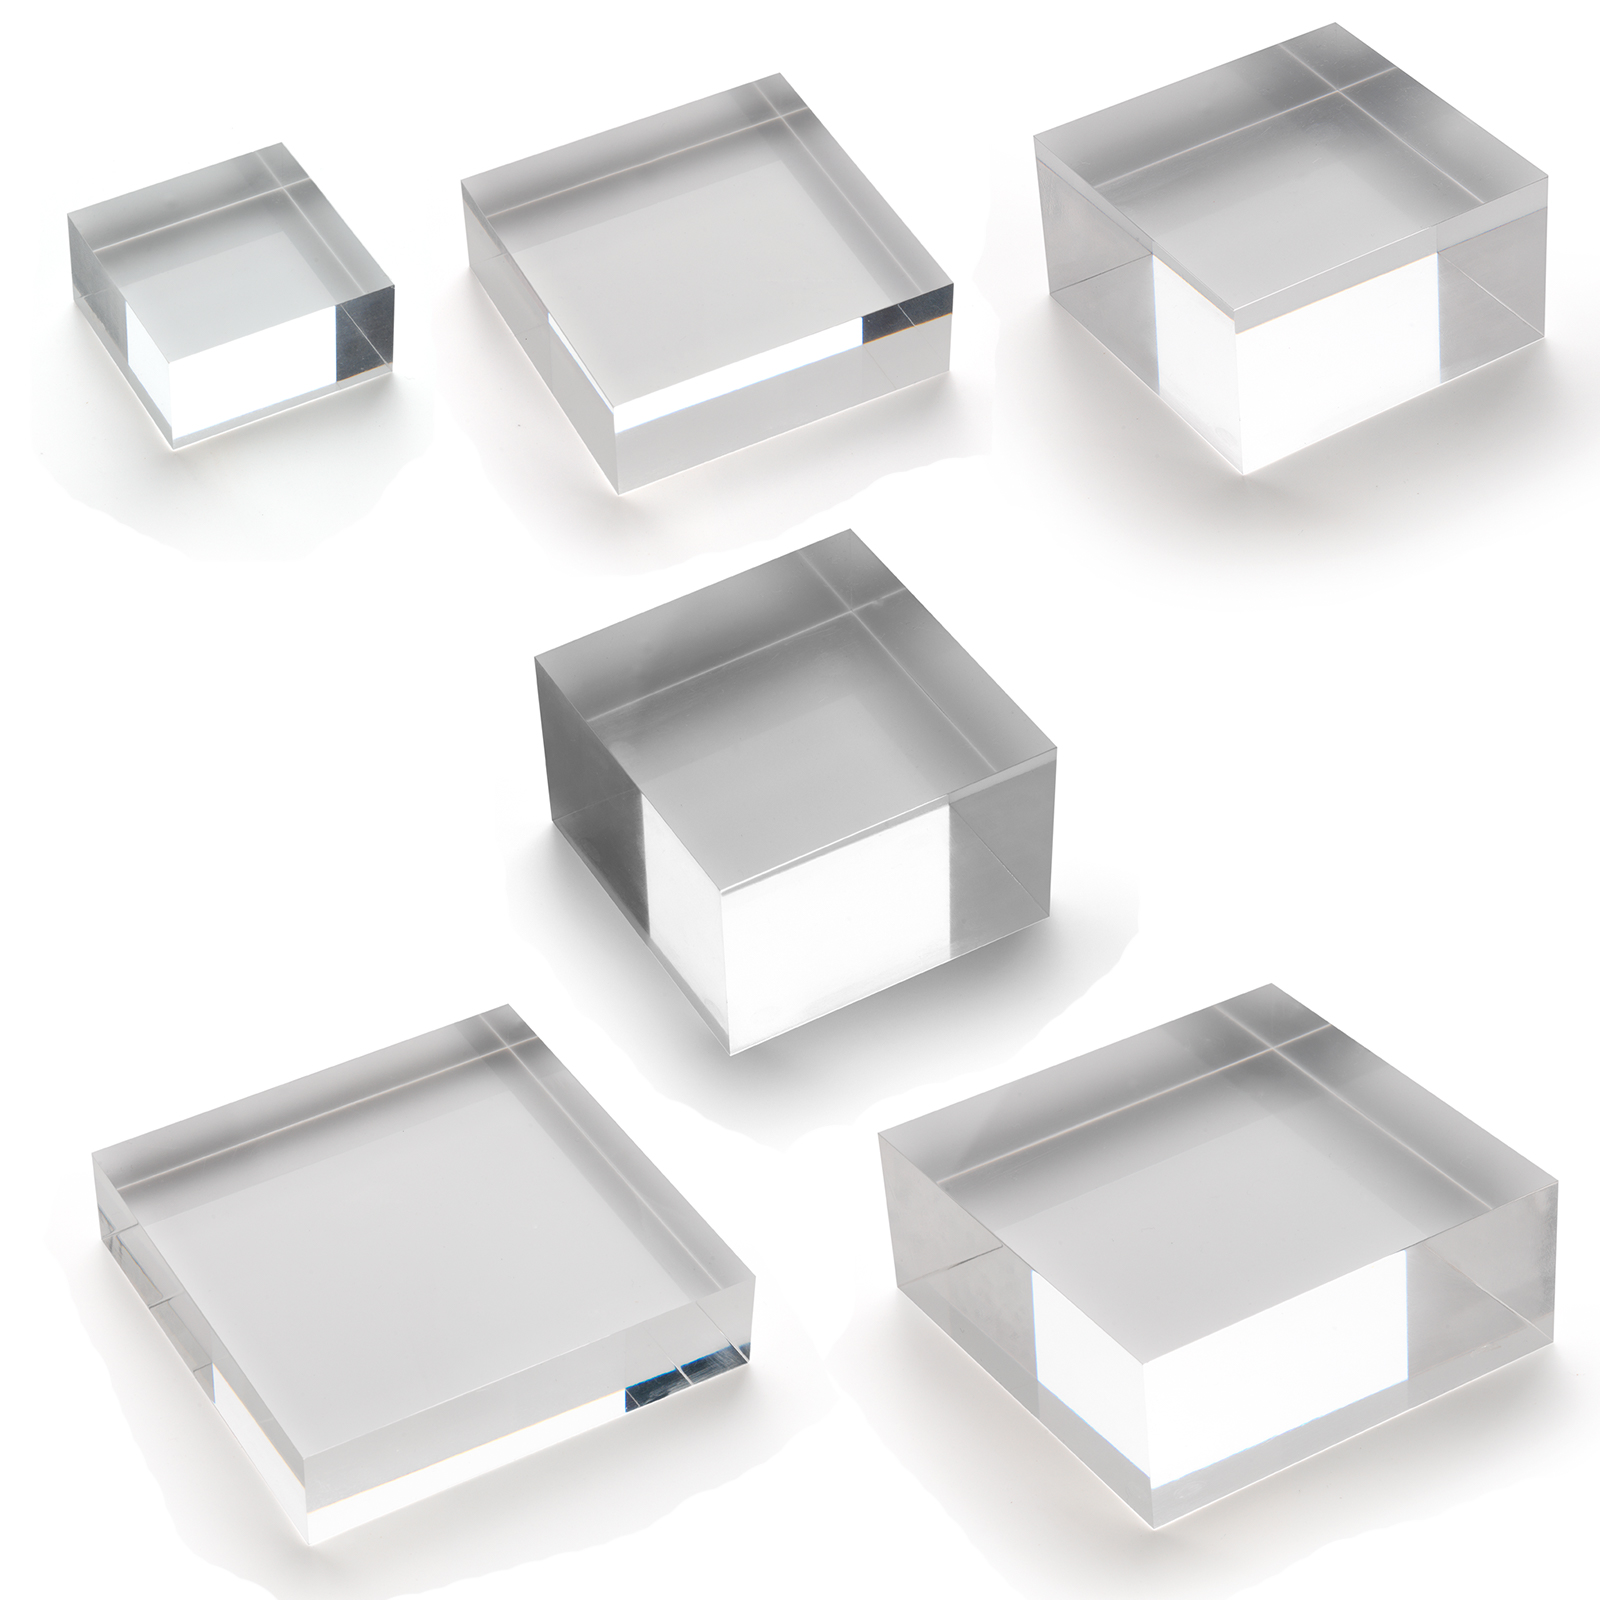 Details about Solid Clear Acrylic Shop Window Till Retail Collectors Shelf  Block Stand Display